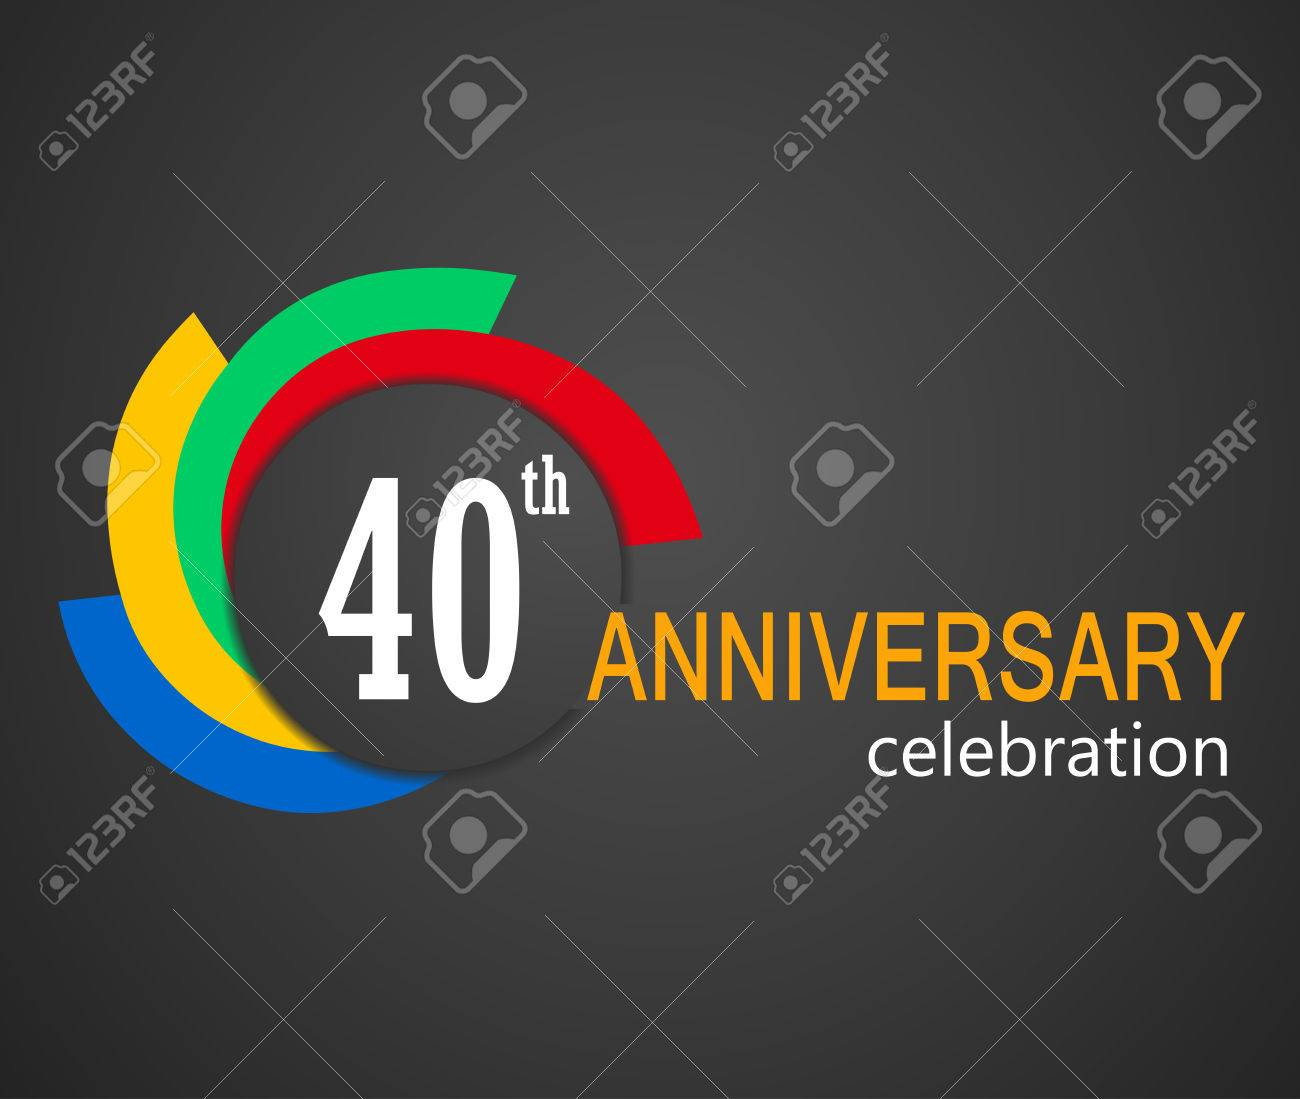 40th Anniversary celebration background, 40 years anniversary card illustration - vector eps10 - 52218651